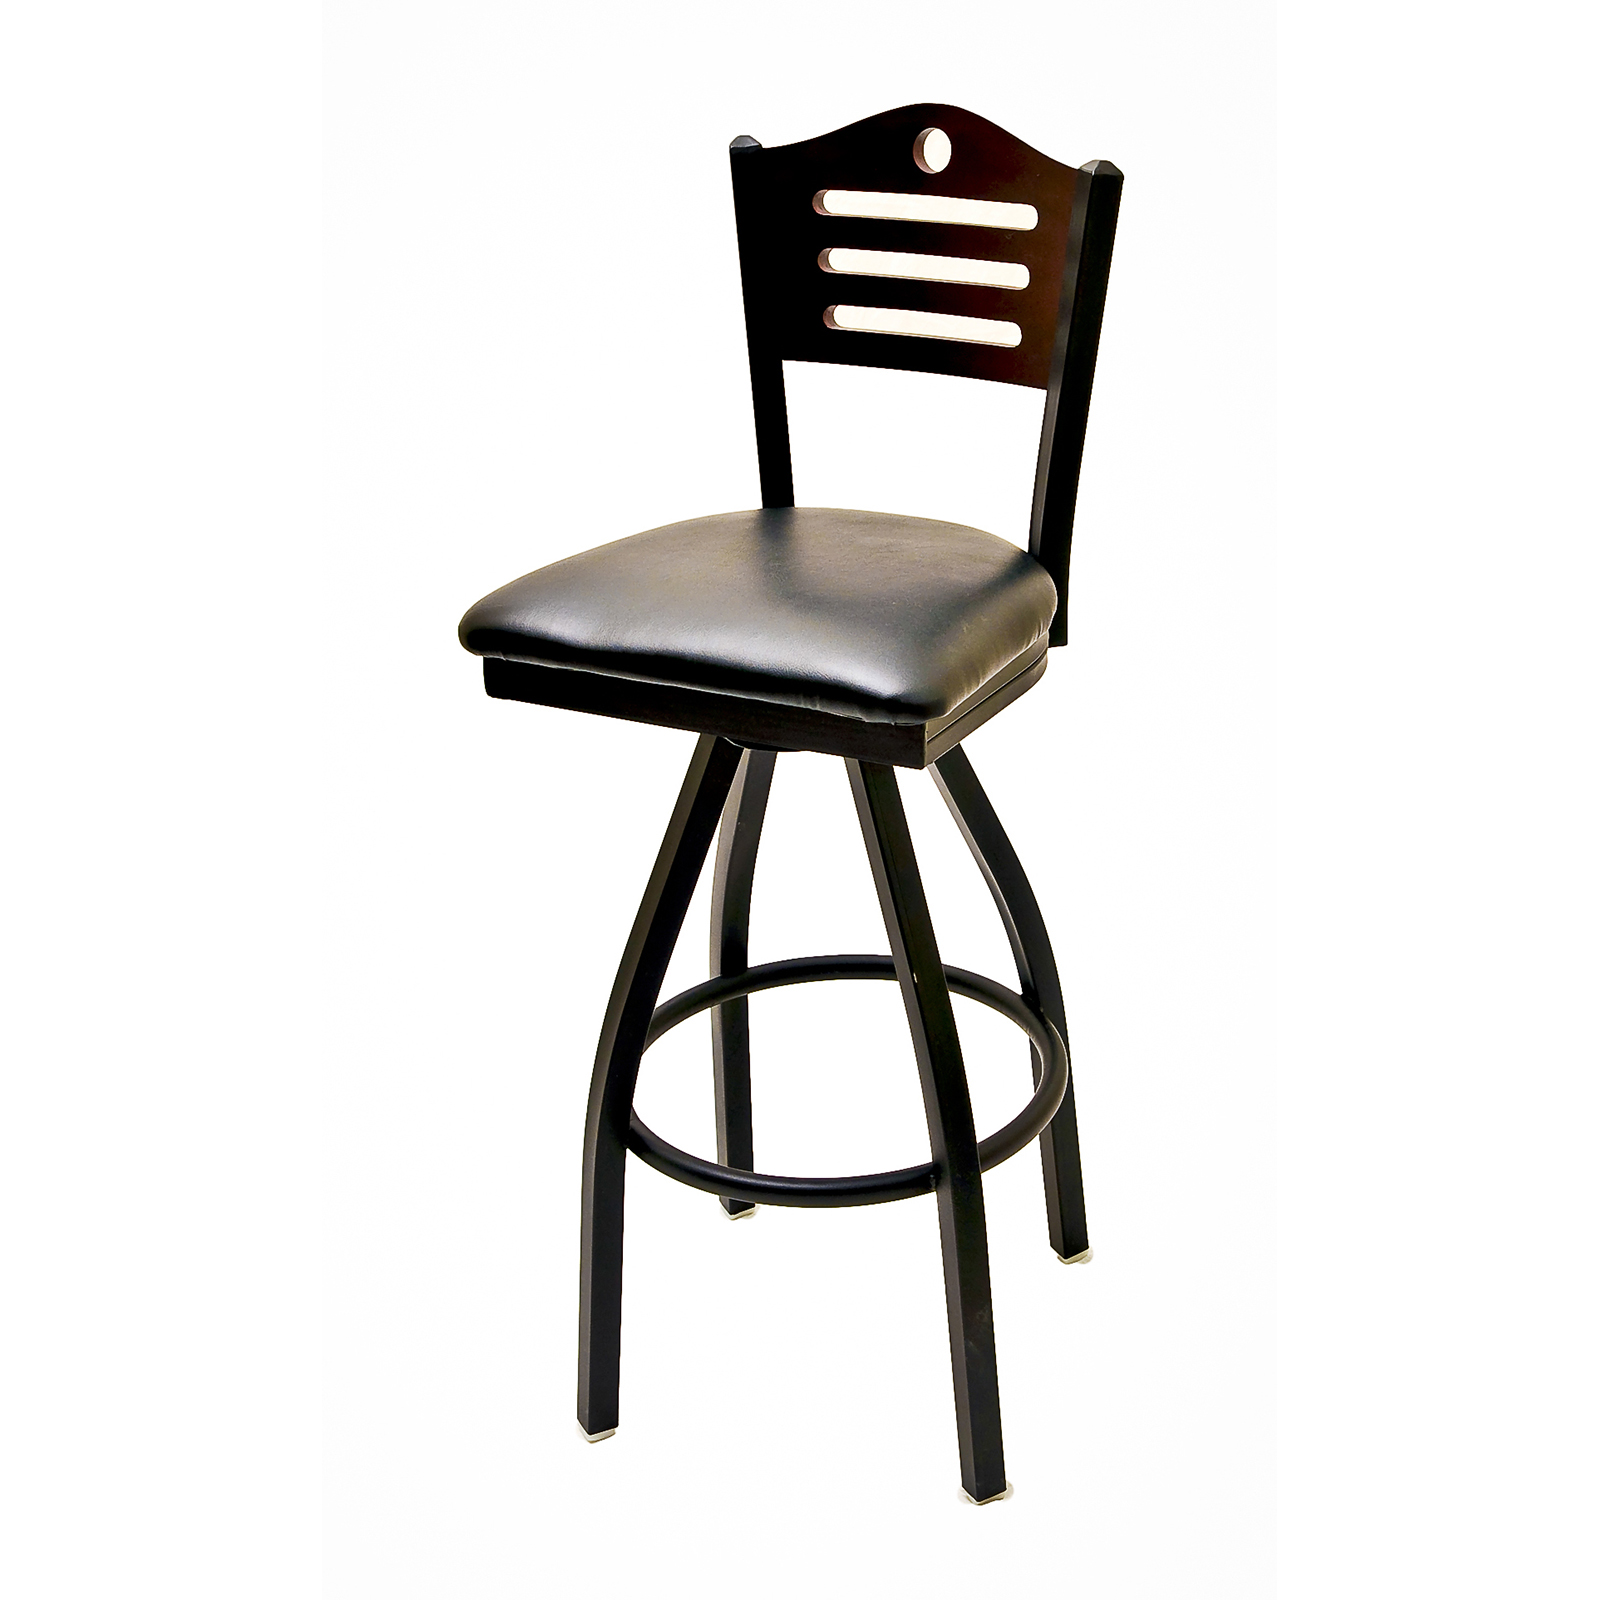 Oak Street SL2150-1S-SH bar stool, swivel, indoor